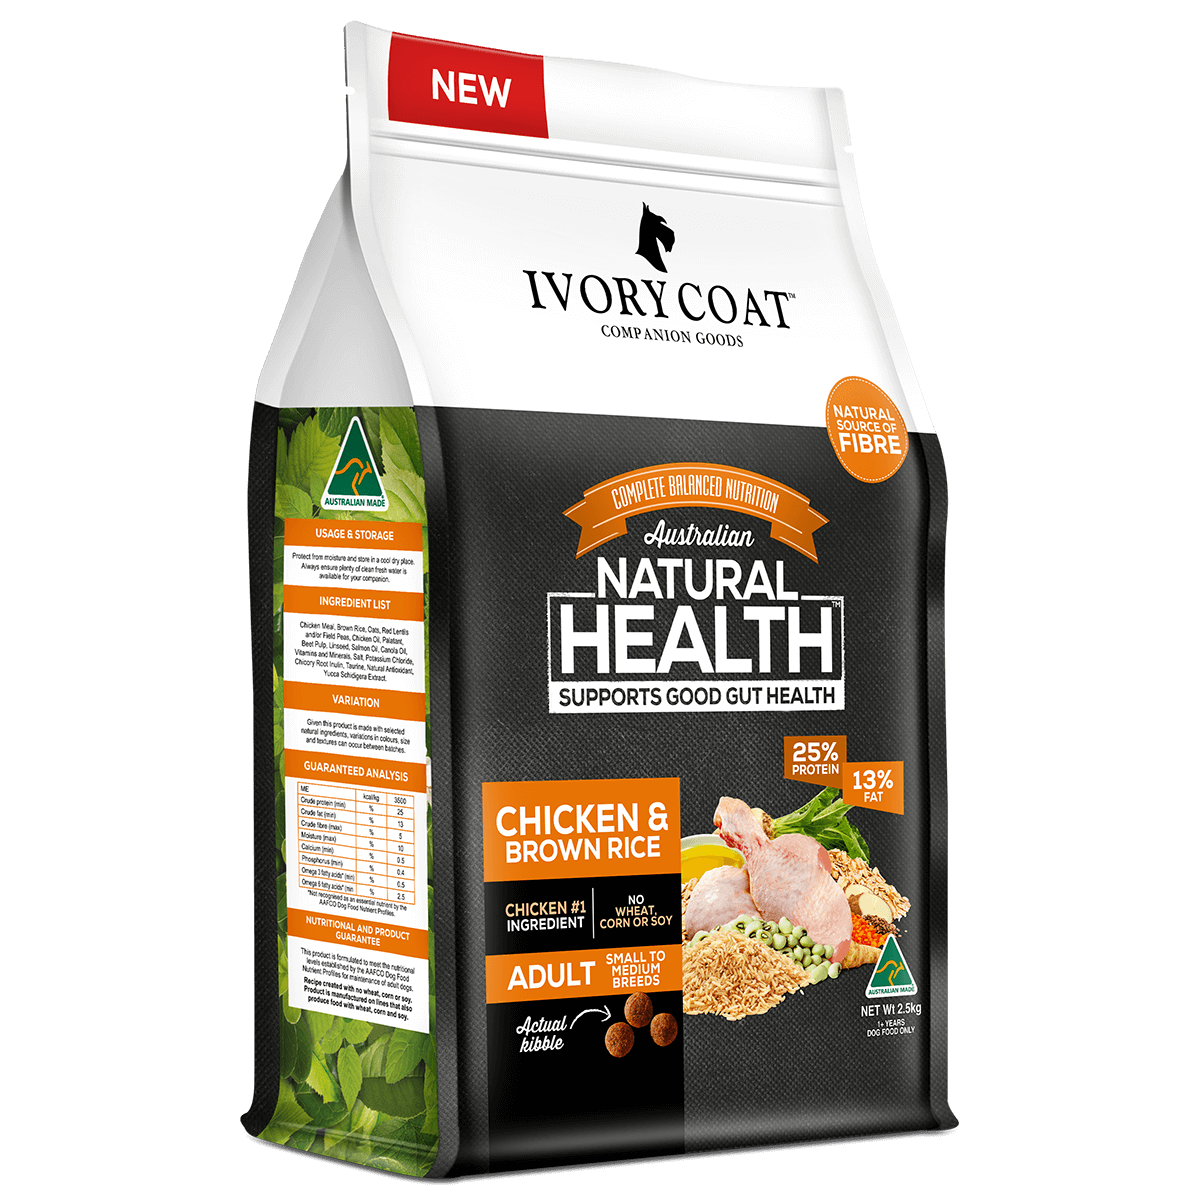 Ivory Coat | Dry Chicken & Brown Rice 2.5kg | Dry Dog Food | Left of pack